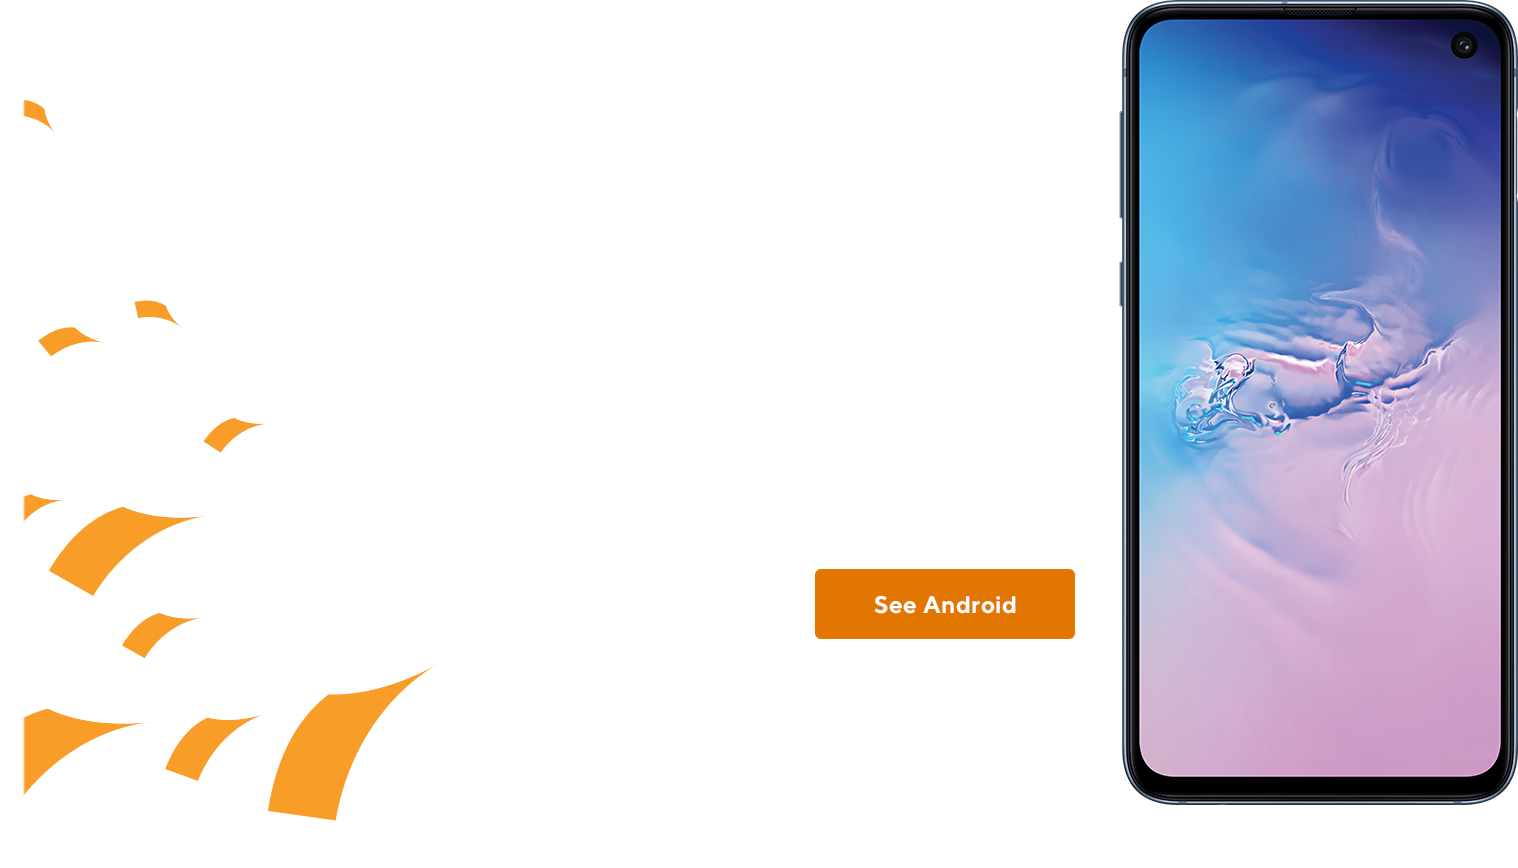 Android. Choose from tons of amazing Android phones. Get the latest and greatest phones from some of the best brands like Samsung, LG and motorola.